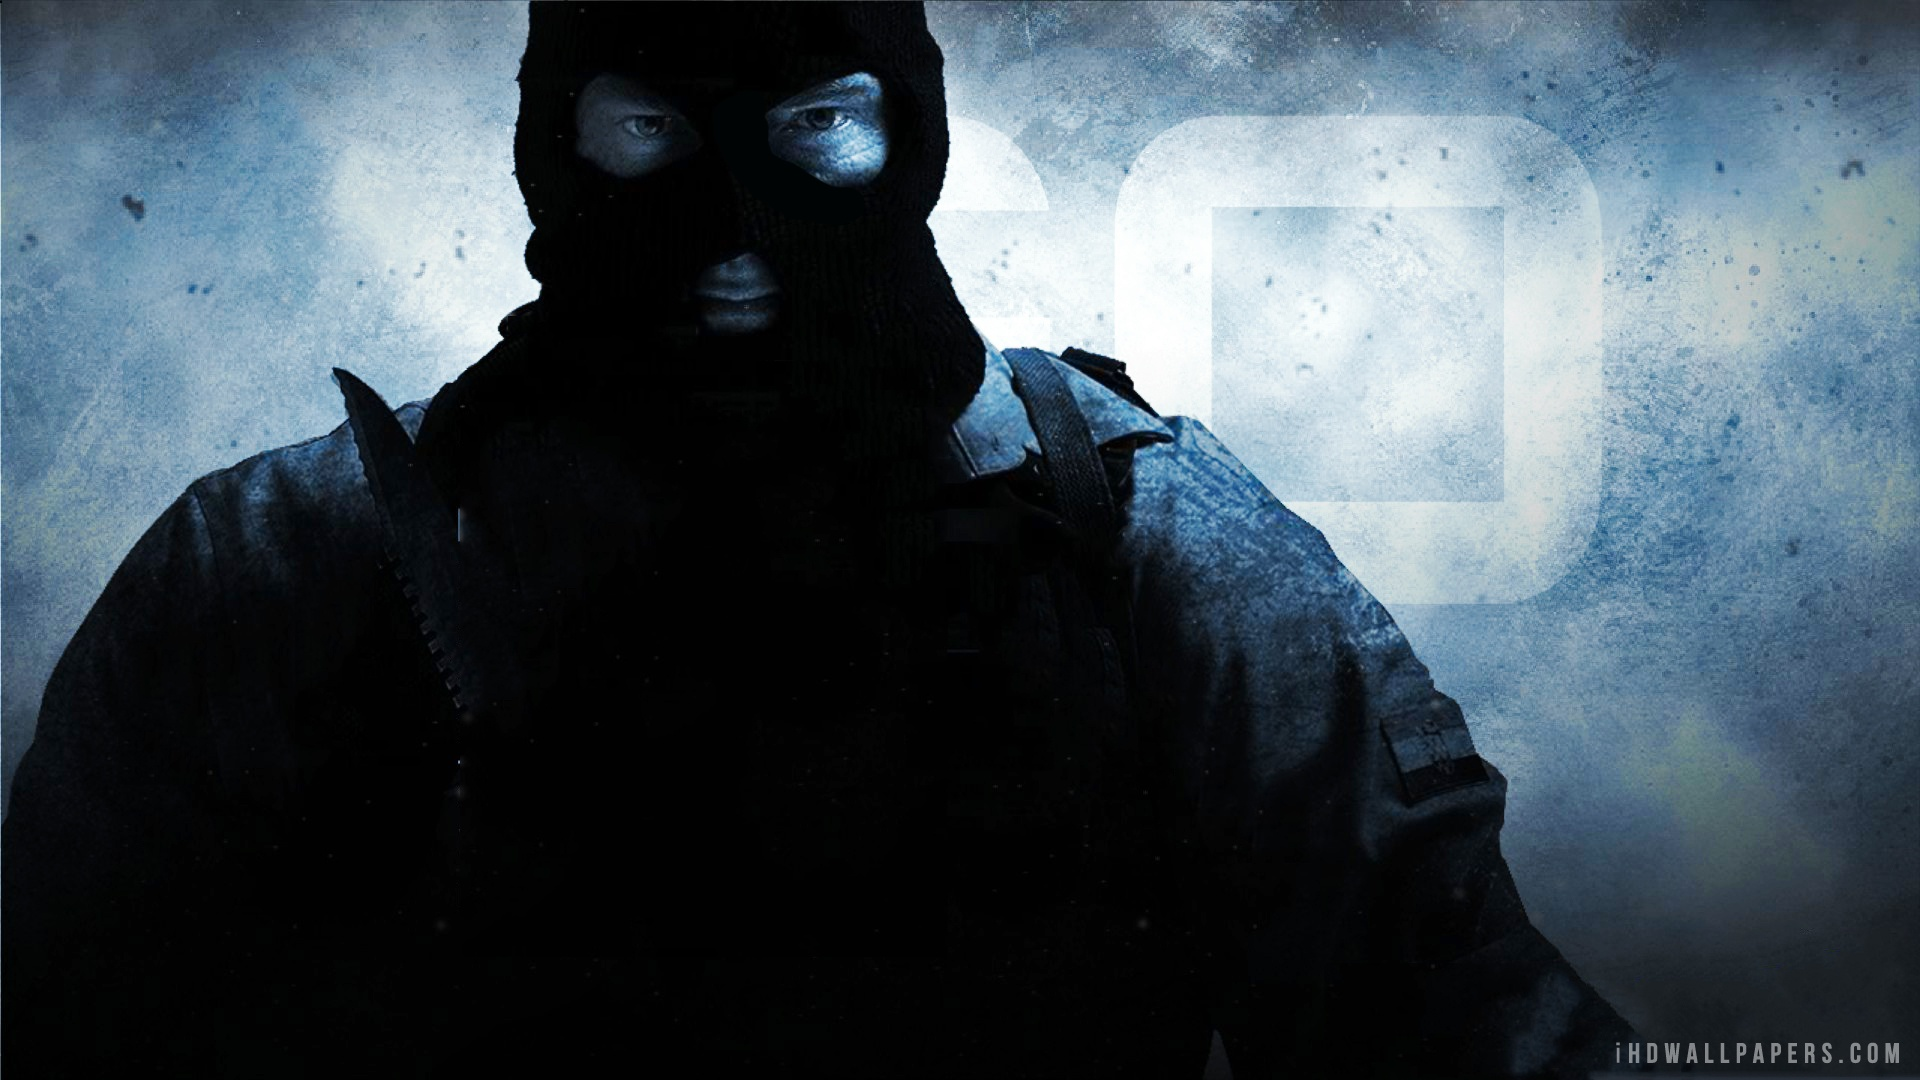 Counter-Strike-Free-Download-wallpaper-wp3804097